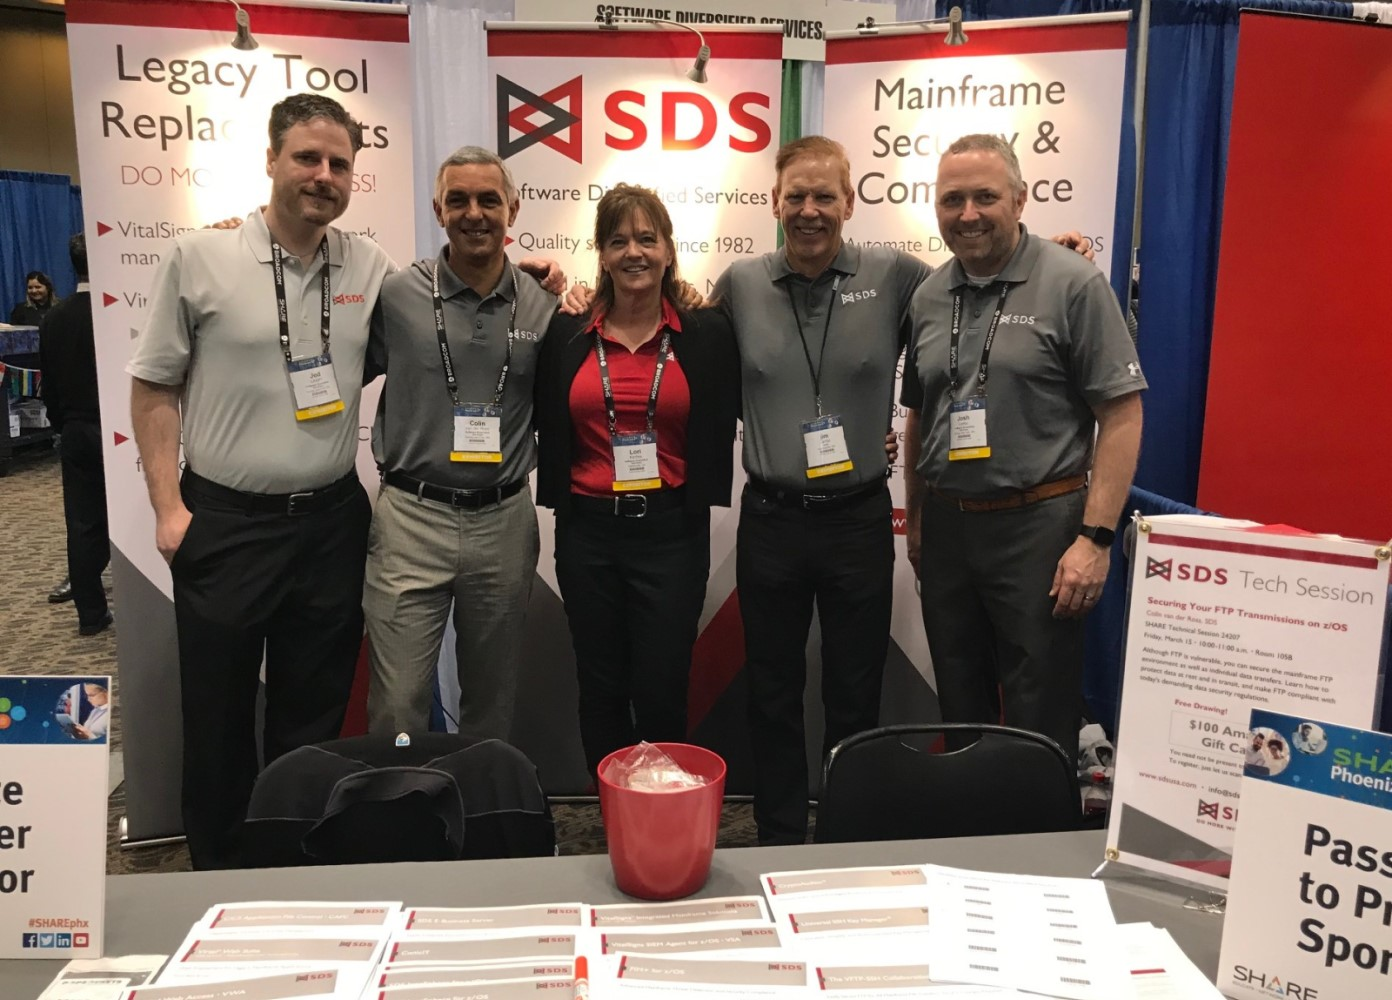 SHARE Phoenix 2019: SDS Booth